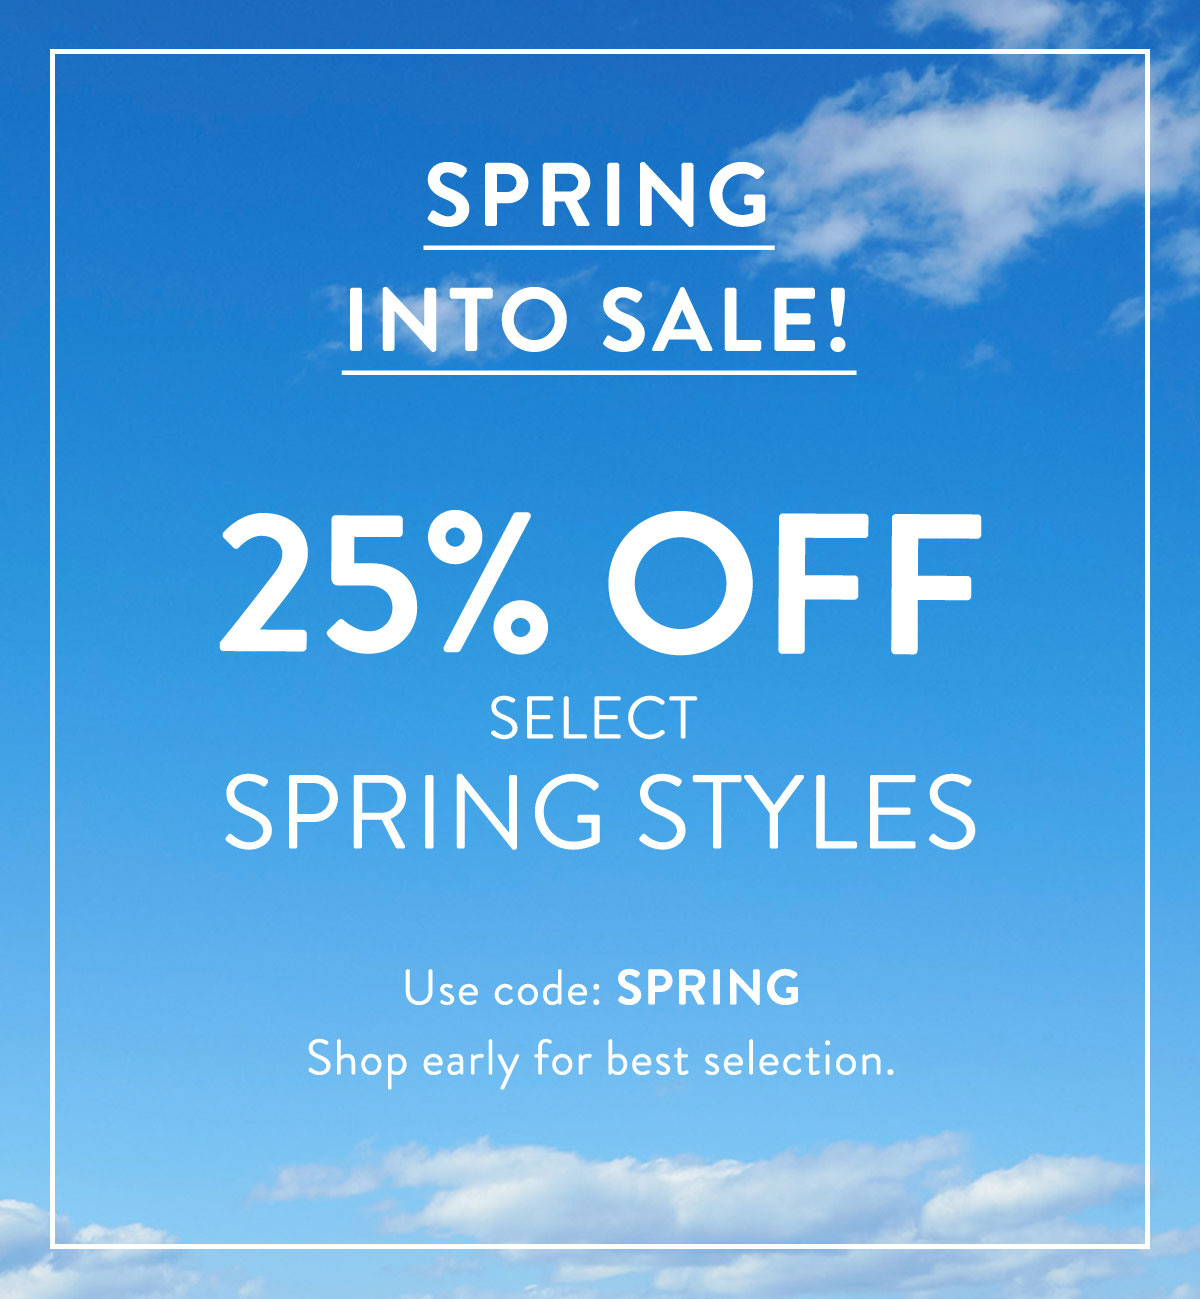 SPRING INTO SALE! 25% OFF SELECT STYLES - USE CODE: SPRING